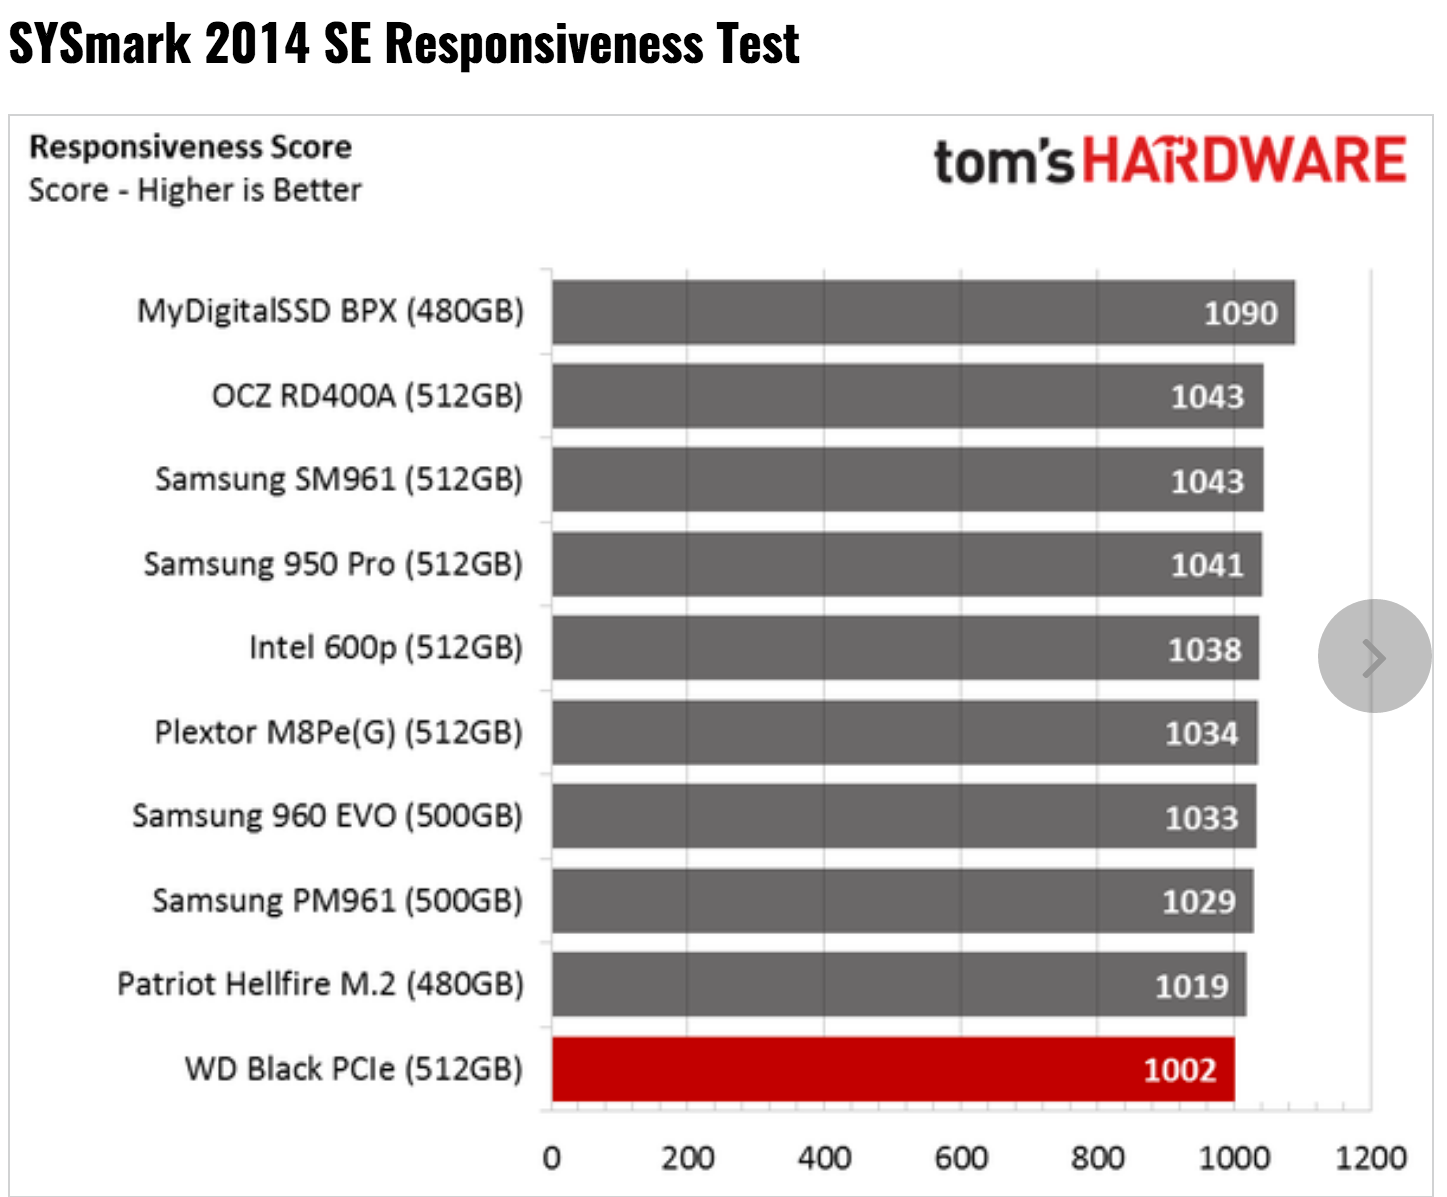 Tom's Hardware: WD Black PCIe 512GB SSD Review using BAPCo's SYSmark 2014 SE Benchmark